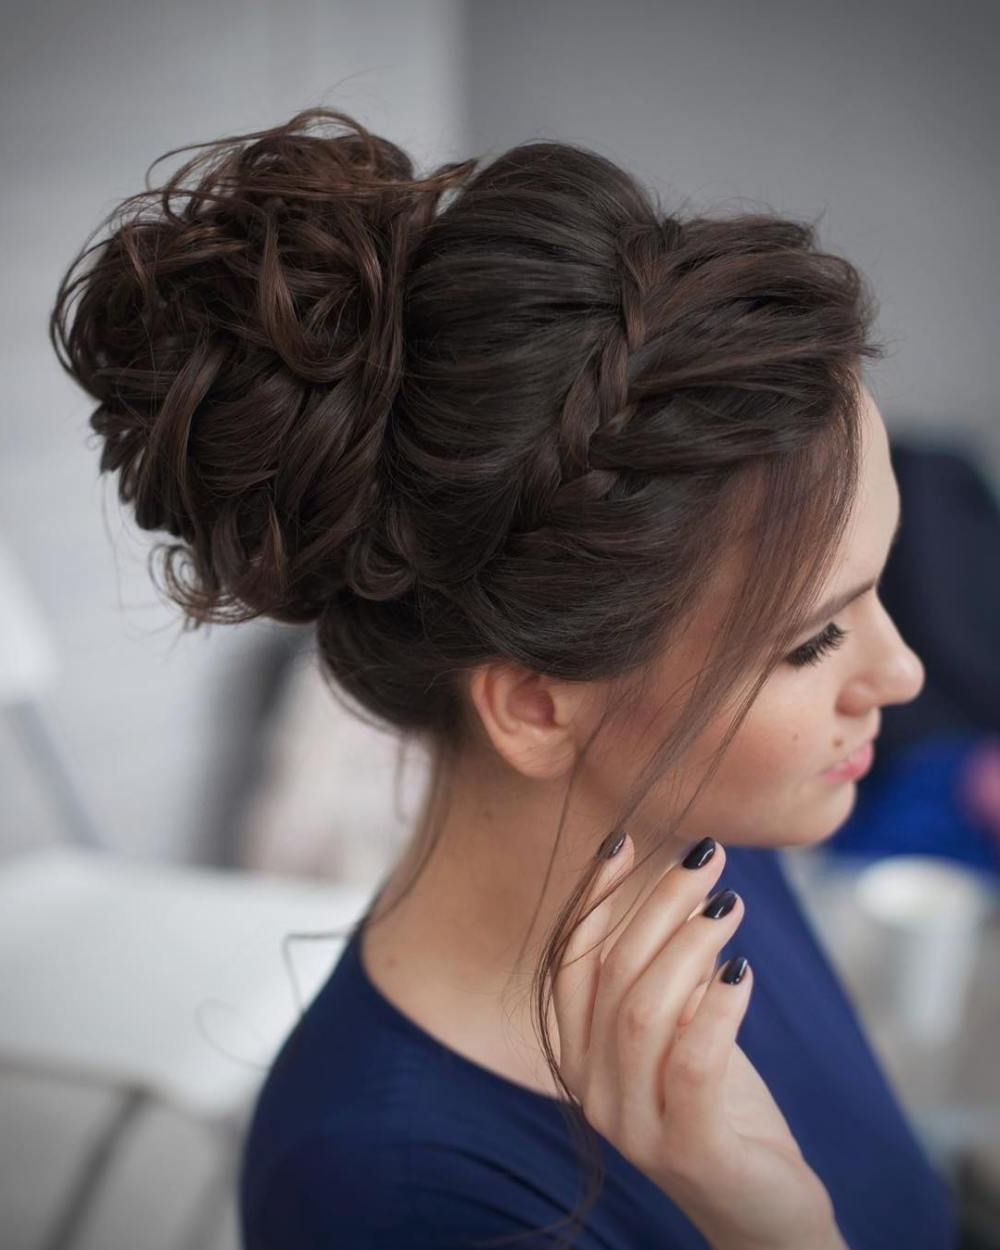 40 Most Delightful Prom Updos For Long Hair In 2018 | Curly Messy In Messy Updo Hairstyles For Prom (View 2 of 15)